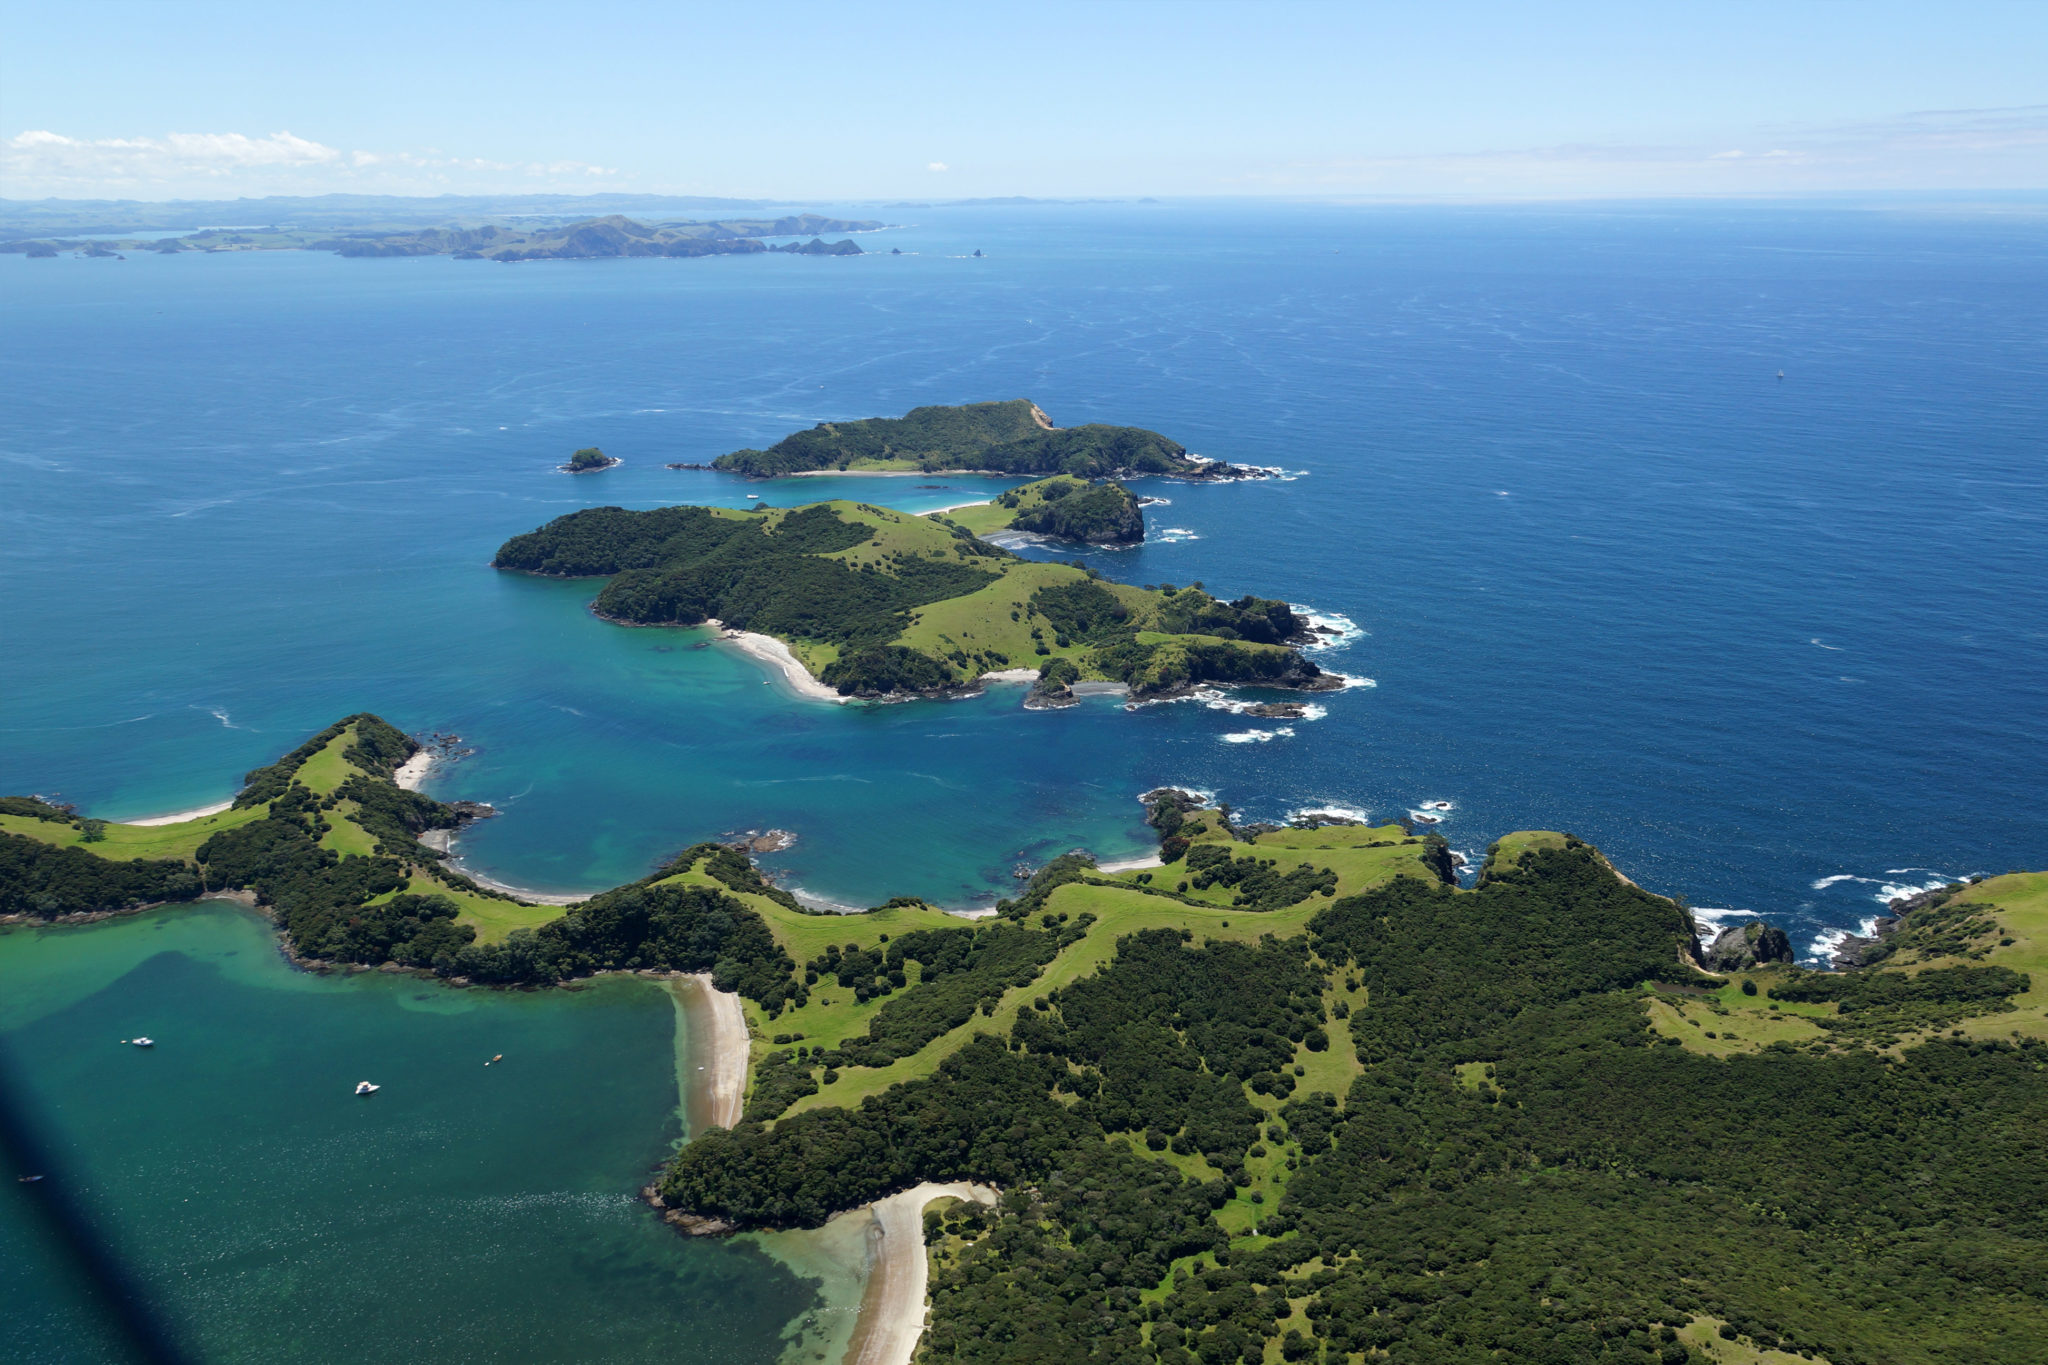 Bay of Islands, New Zealand. Mighway World Masters Games Partner